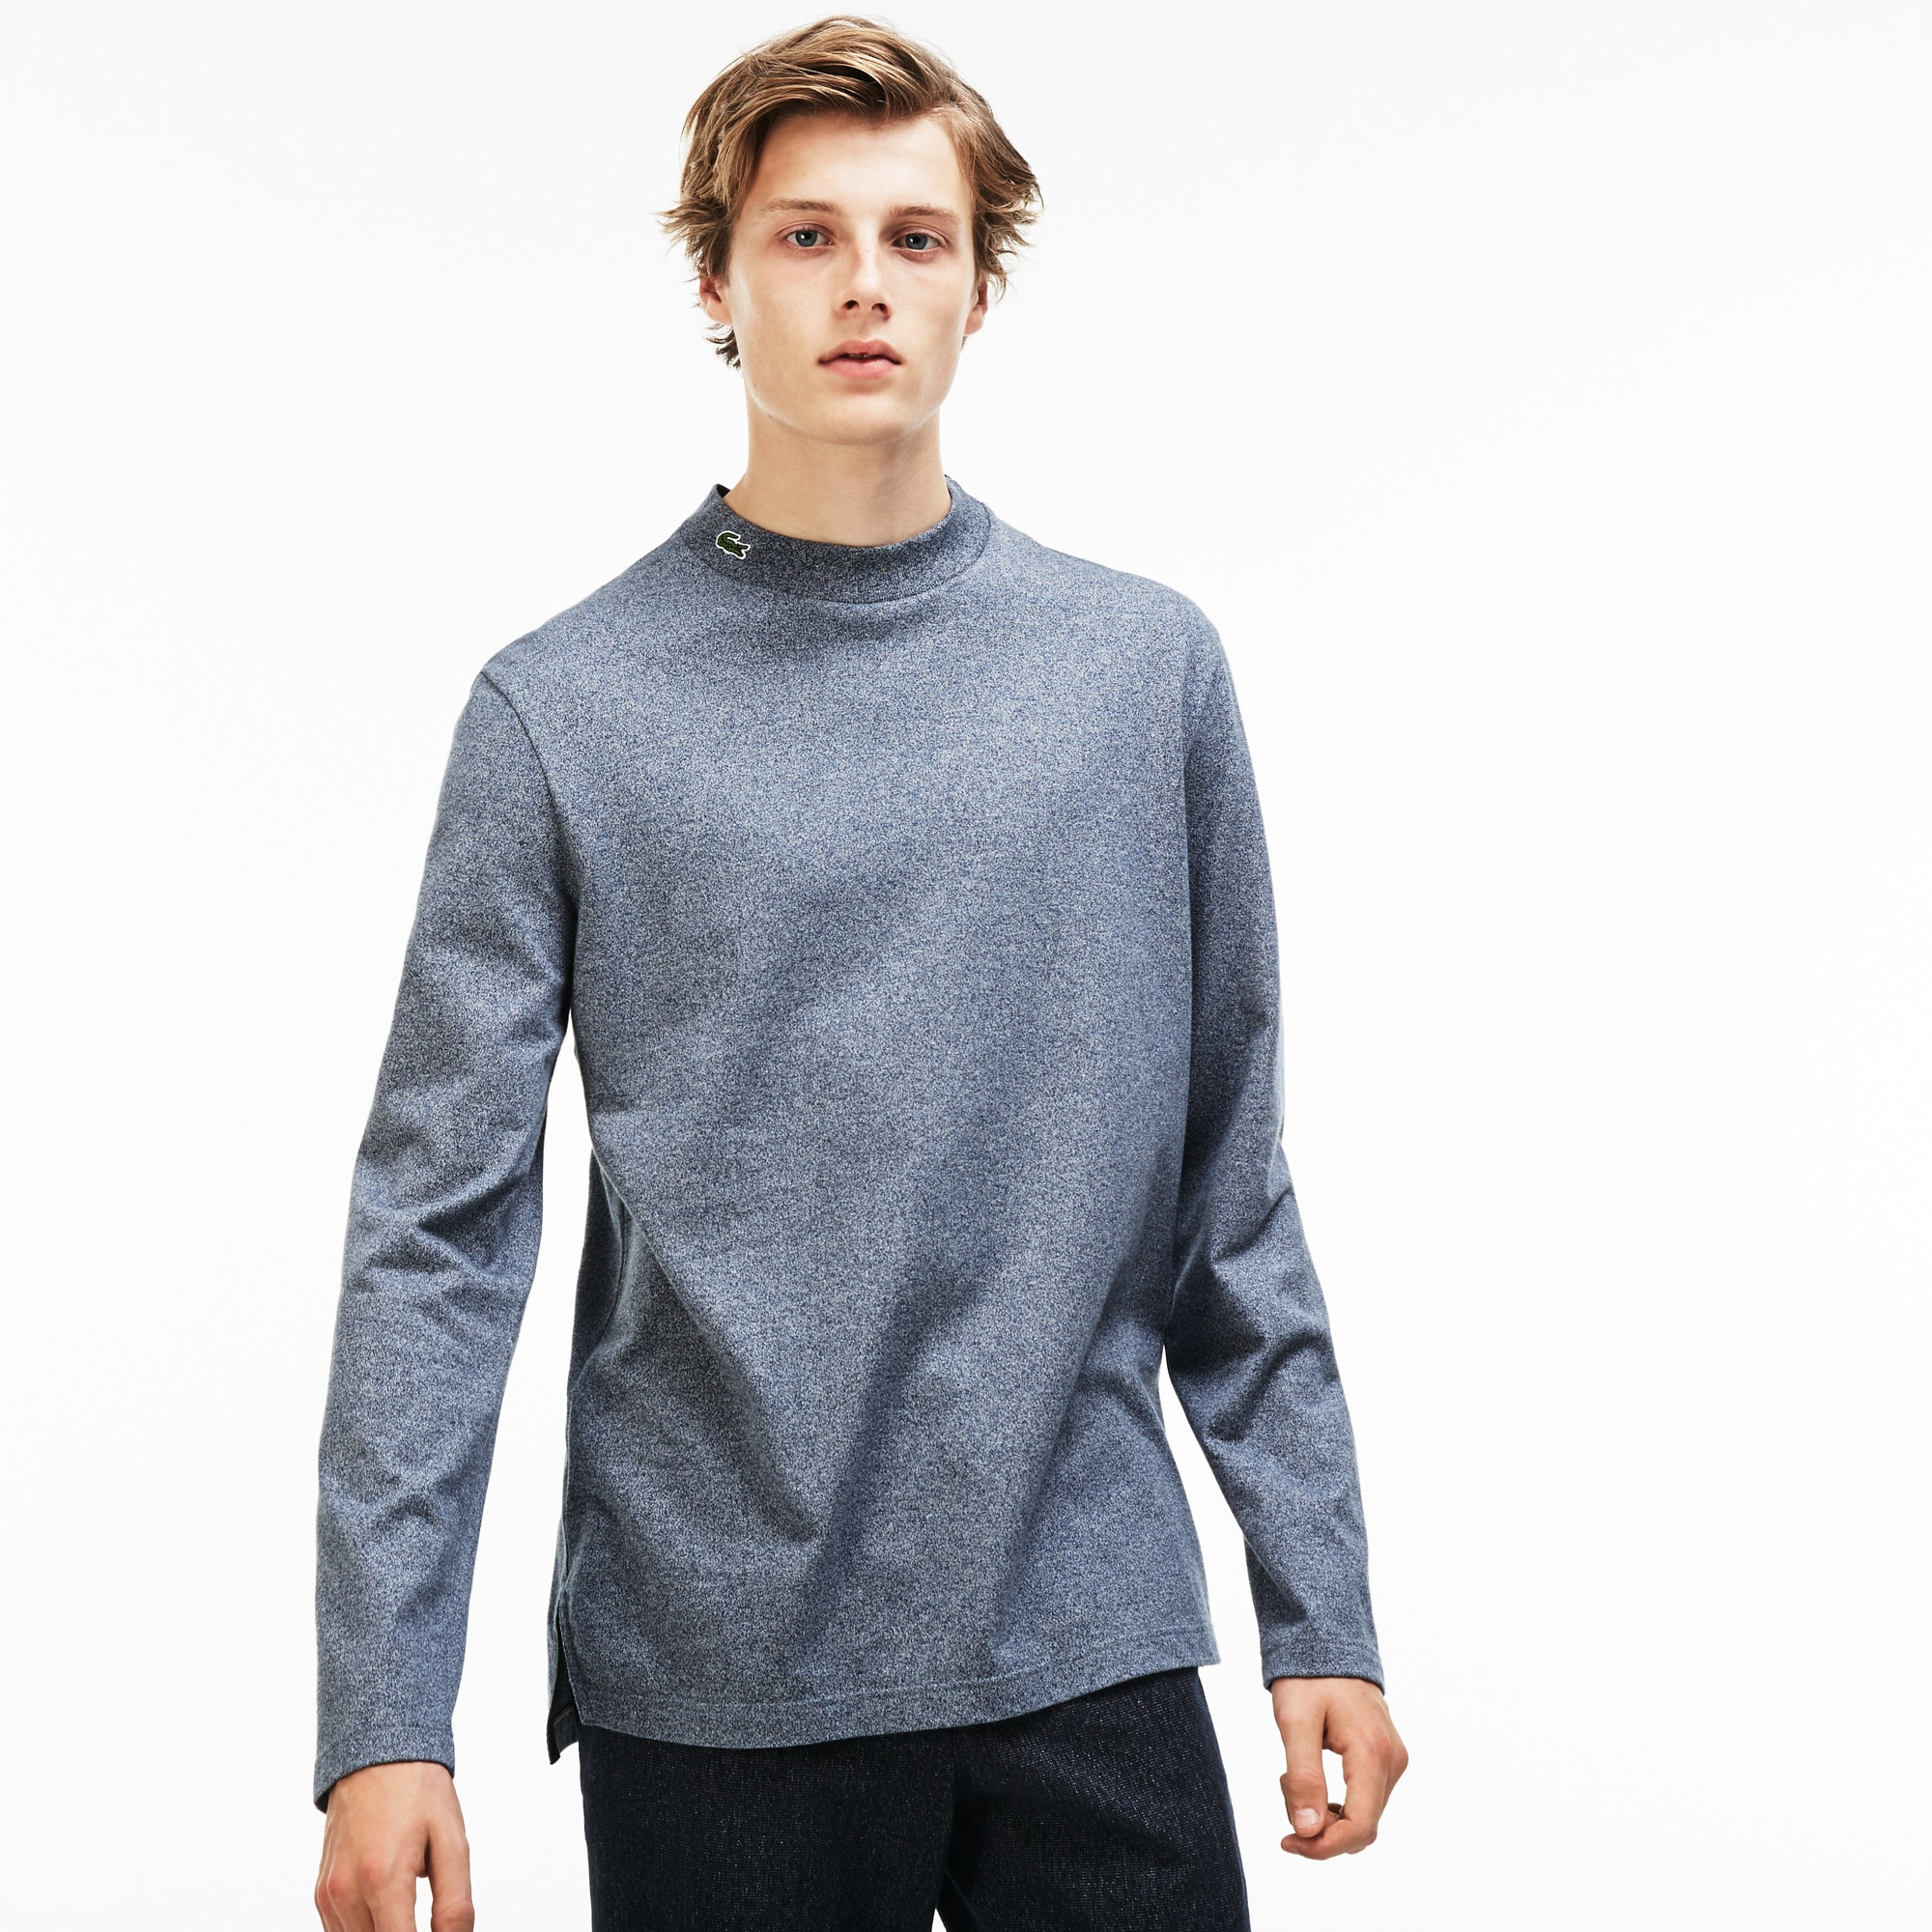 Men's Stand-Up Collar Cotton Jersey T-shirt   LACOSTE